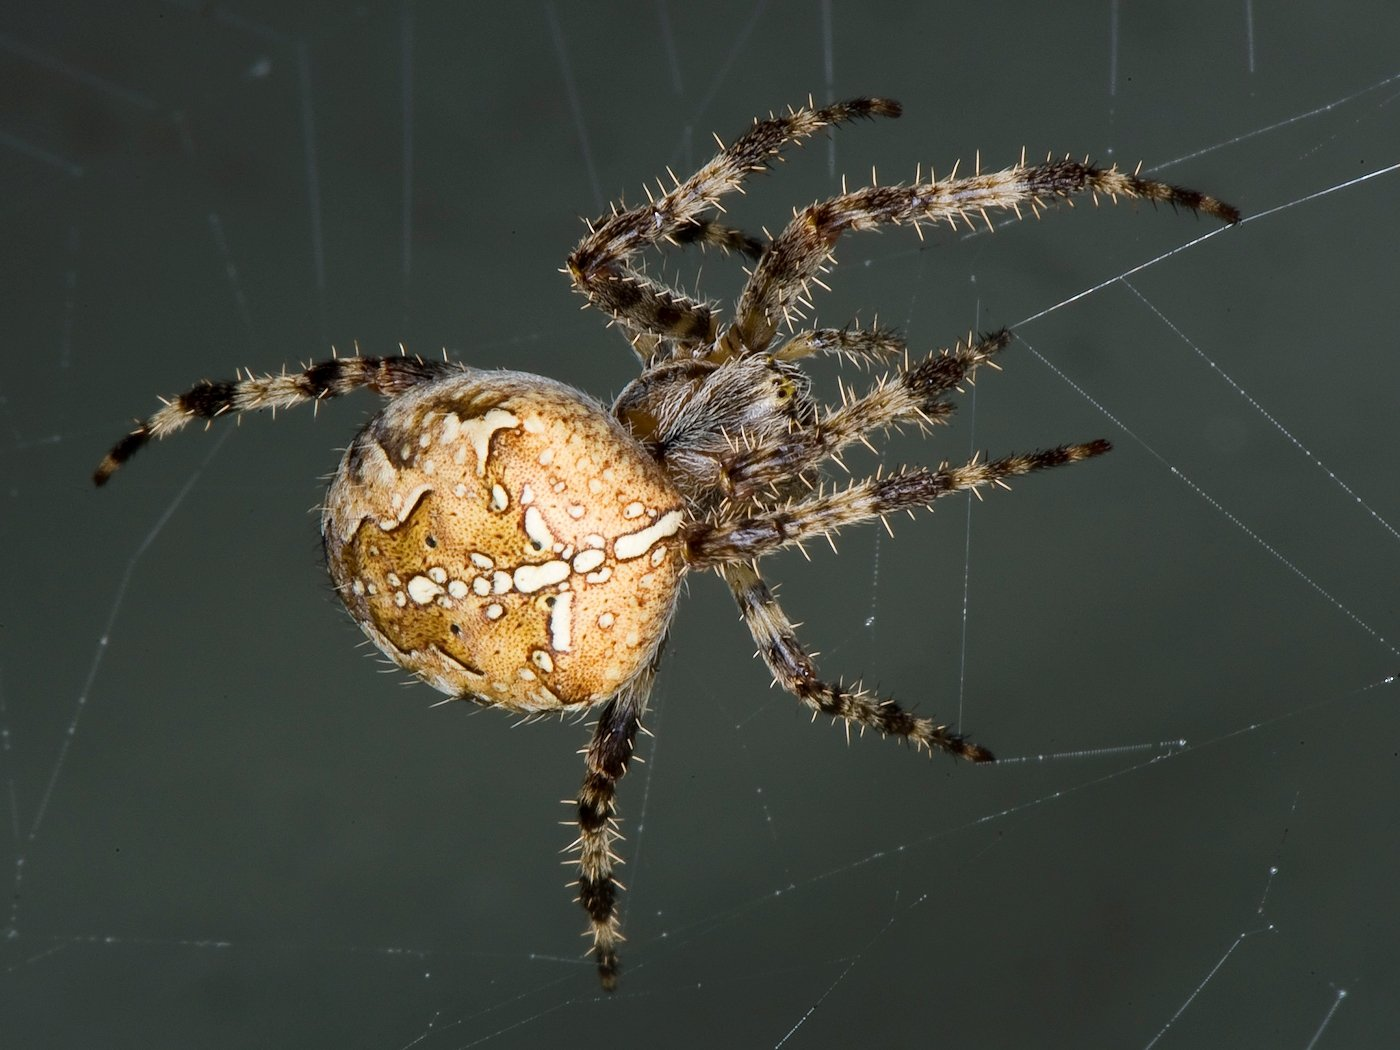 098 cross spider web.jpg